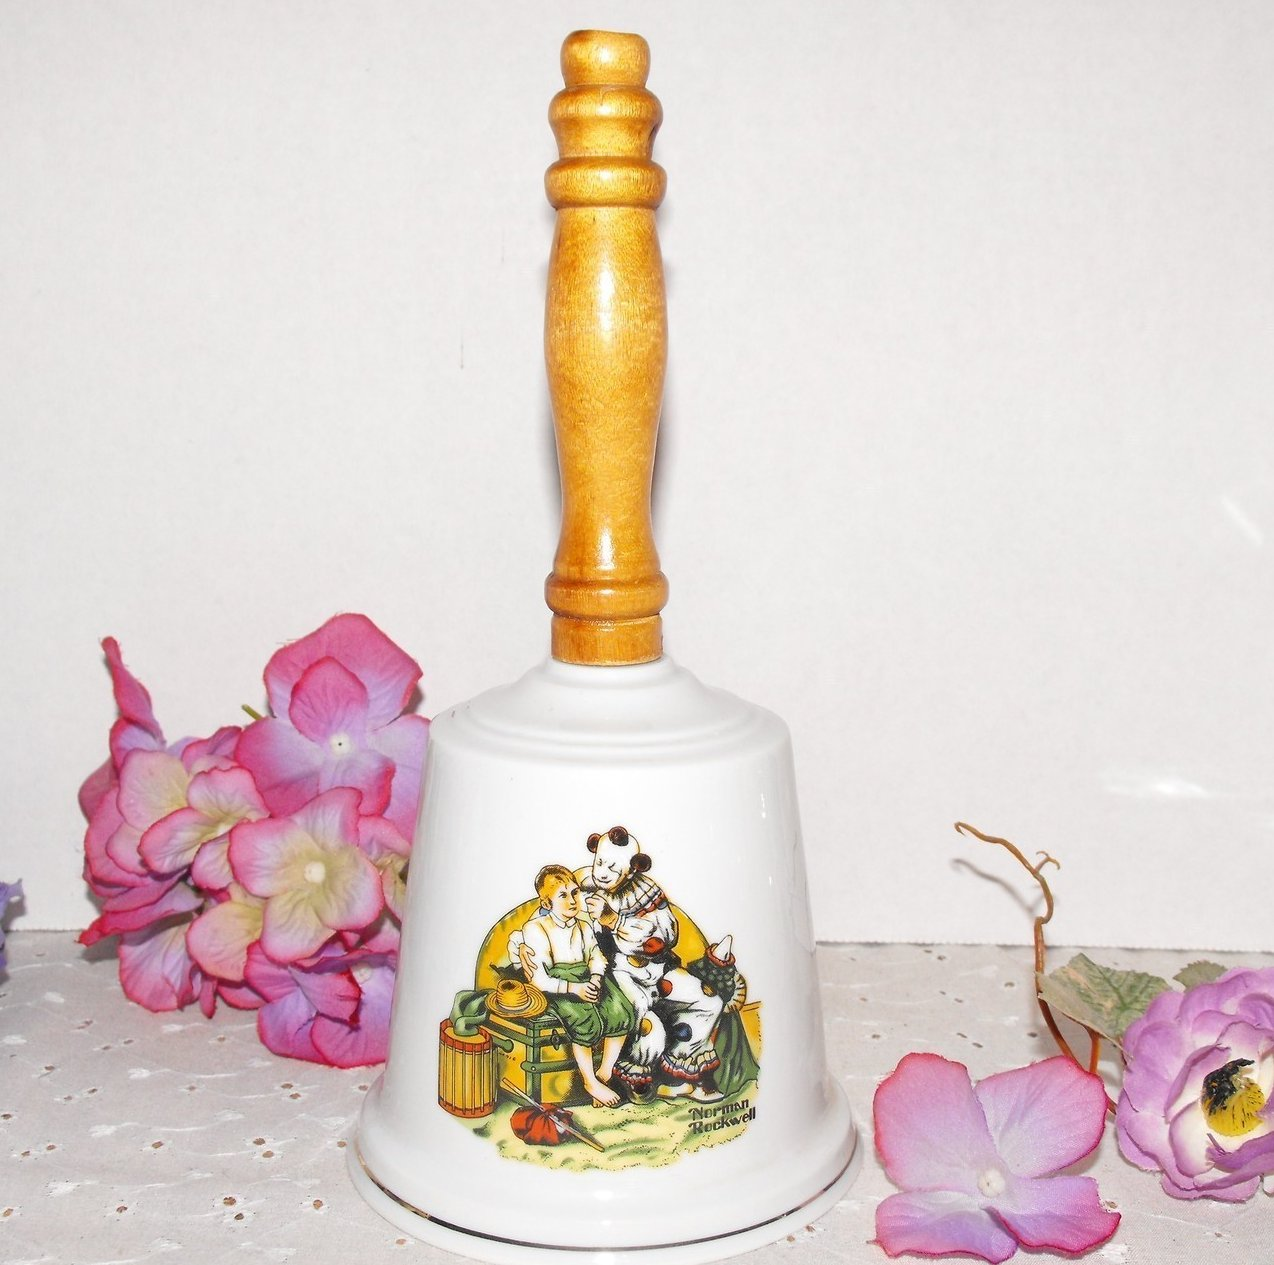 Hand Bell Norman Rockwell Ceramic Wood Handle